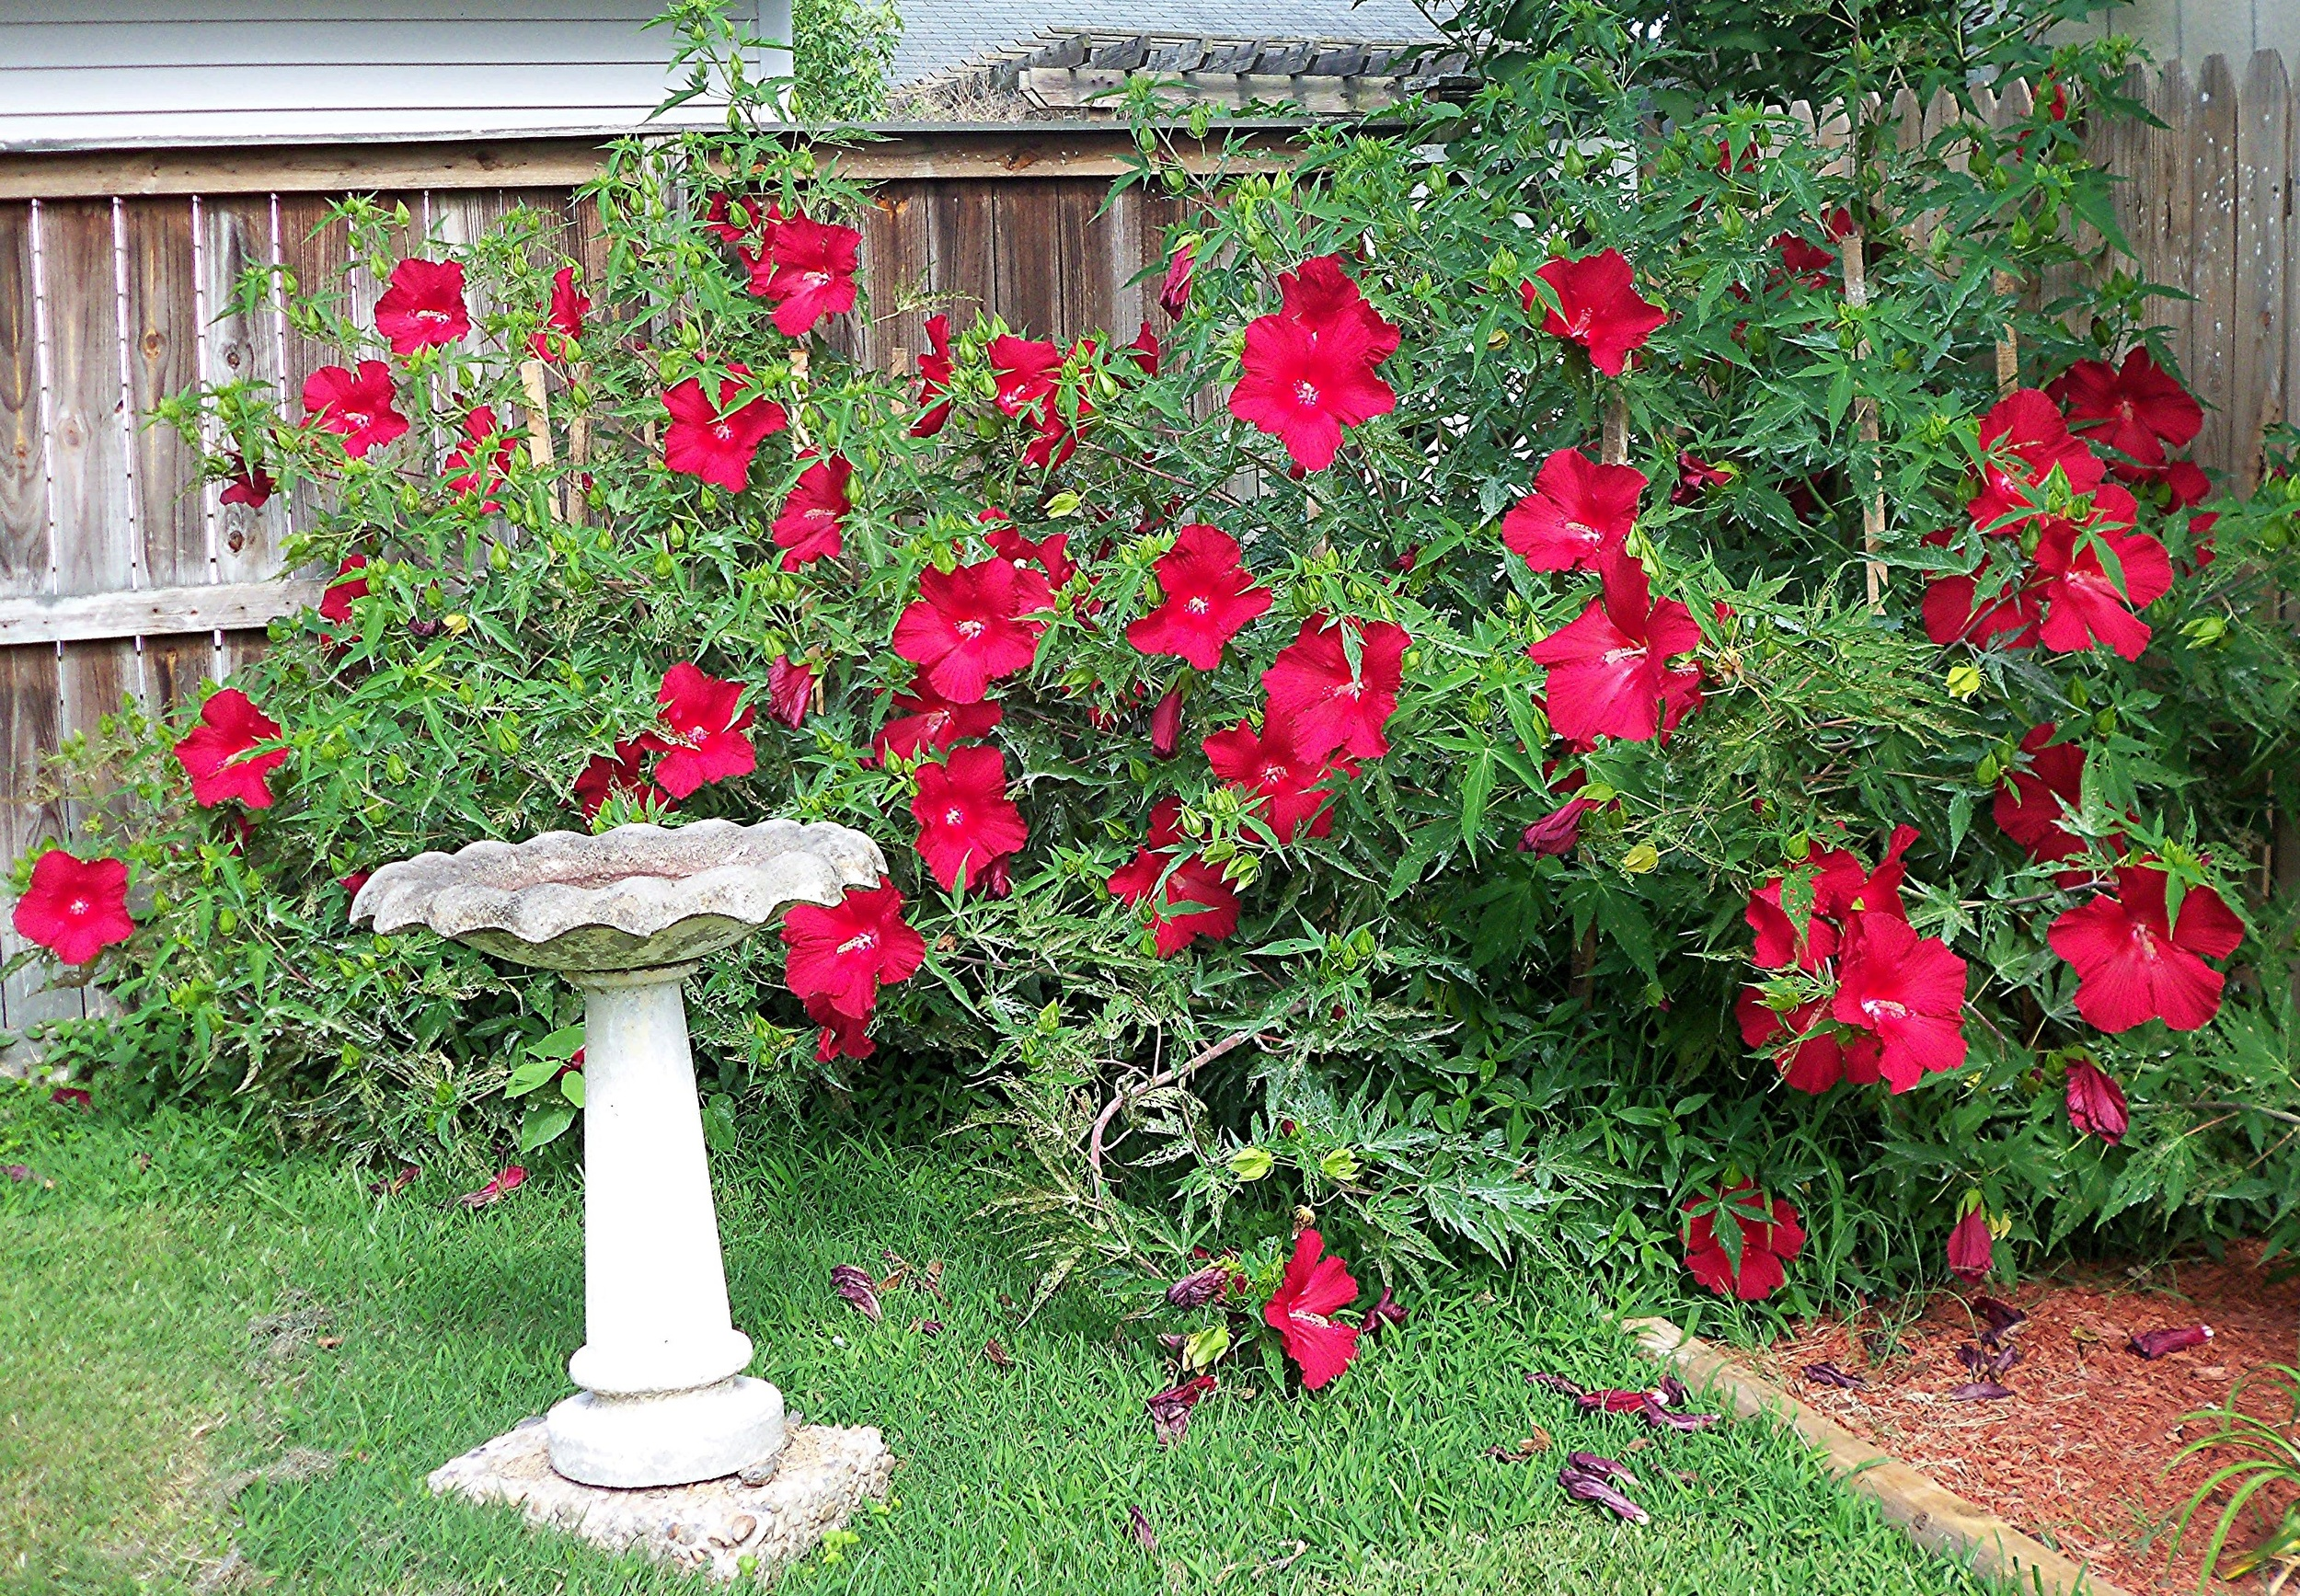 Hibiscus moscheutos 'Lord Baltimore' by Va.Rose/CC BY